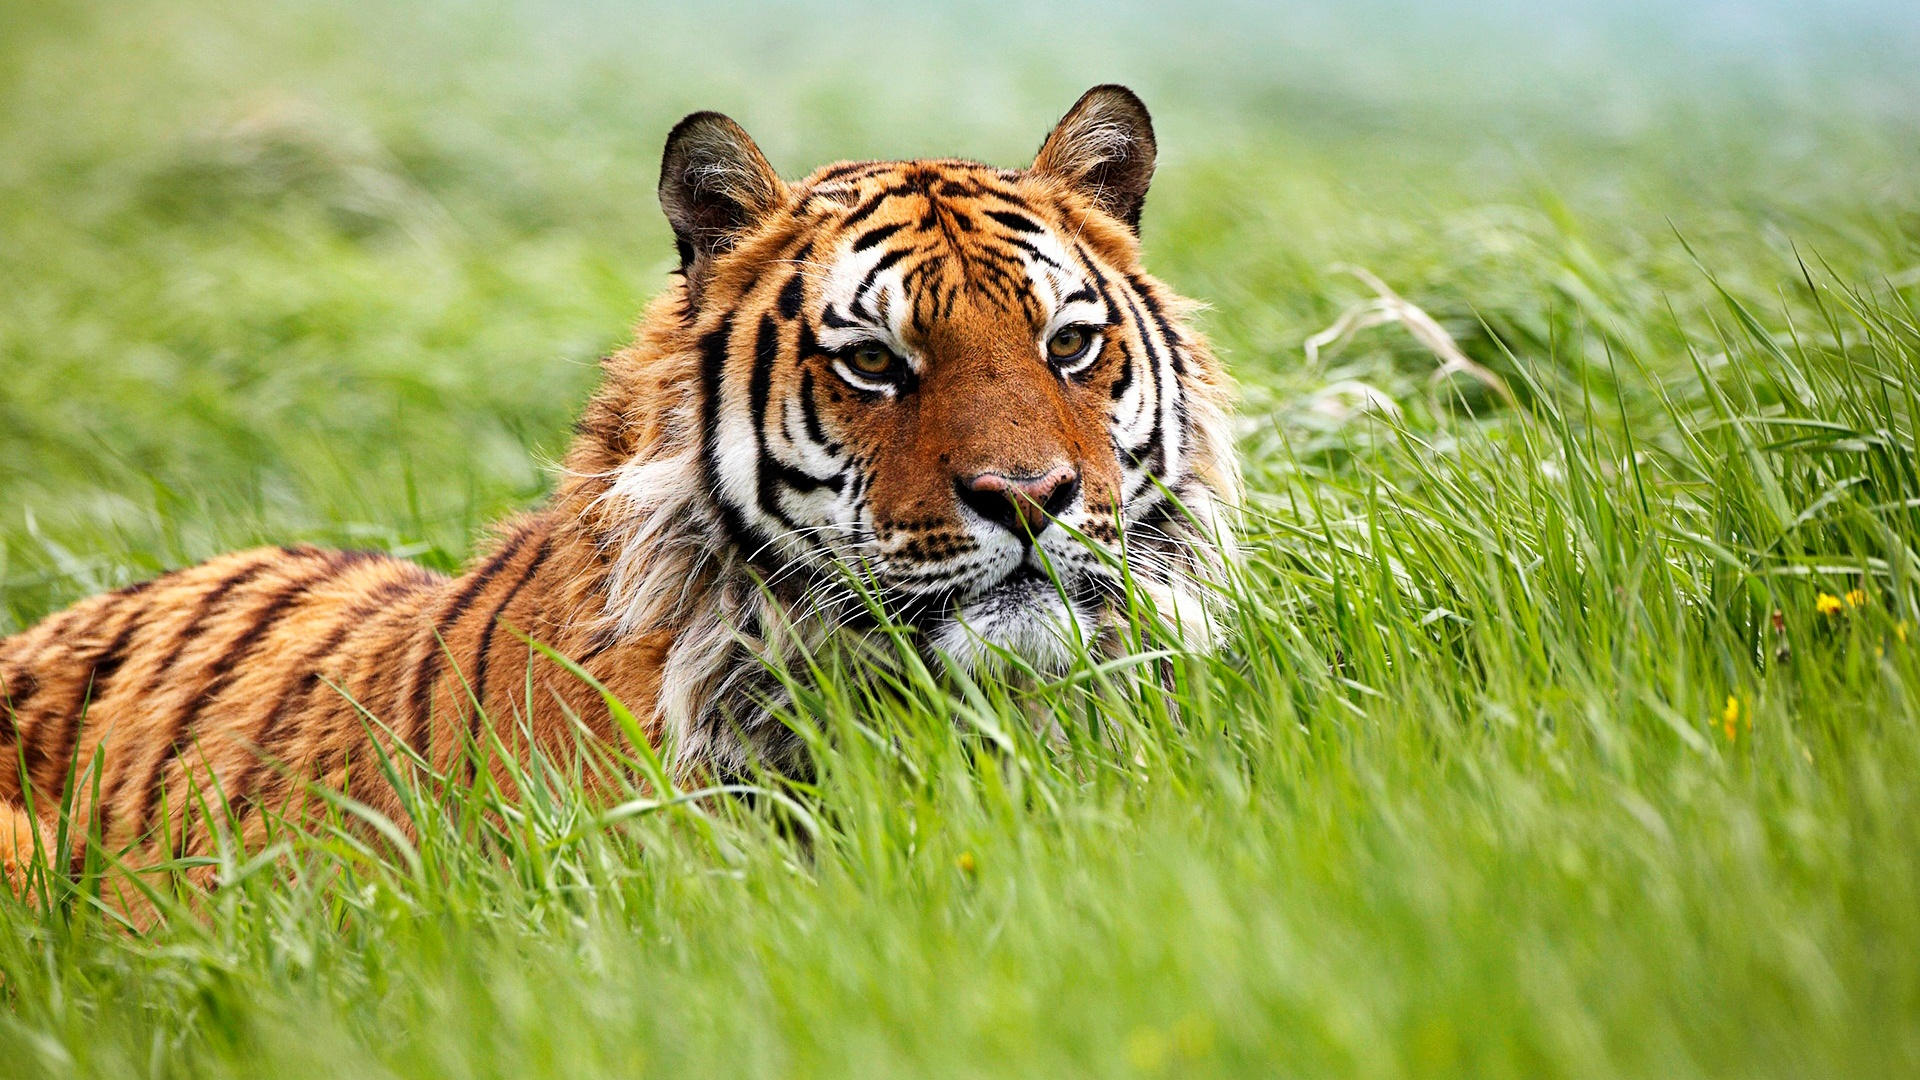 Wonderful Wallpaper High Quality Tiger - amazing_siberian_tiger_8910  Gallery_545458.jpg